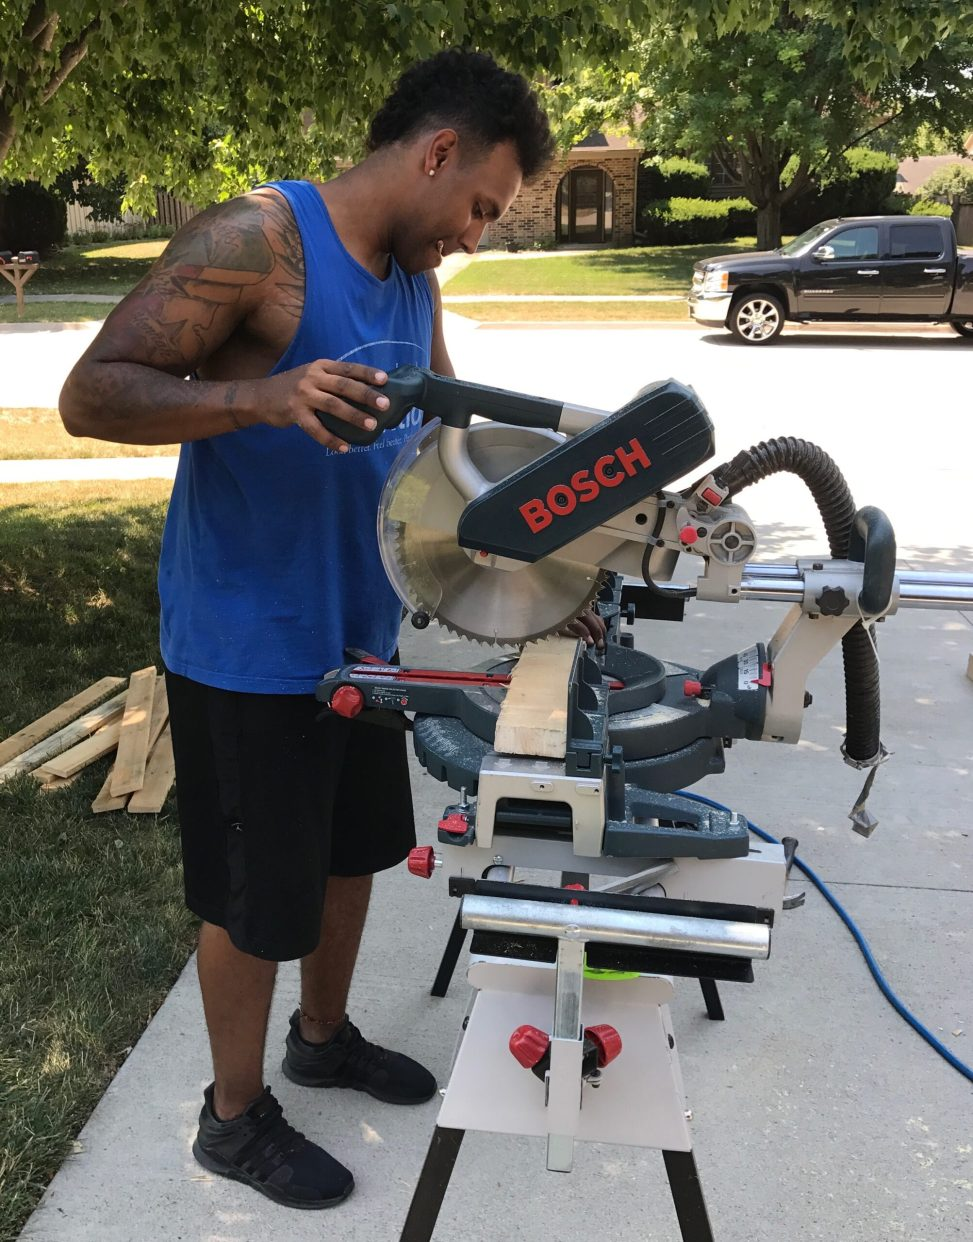 DIYer at work on a saw